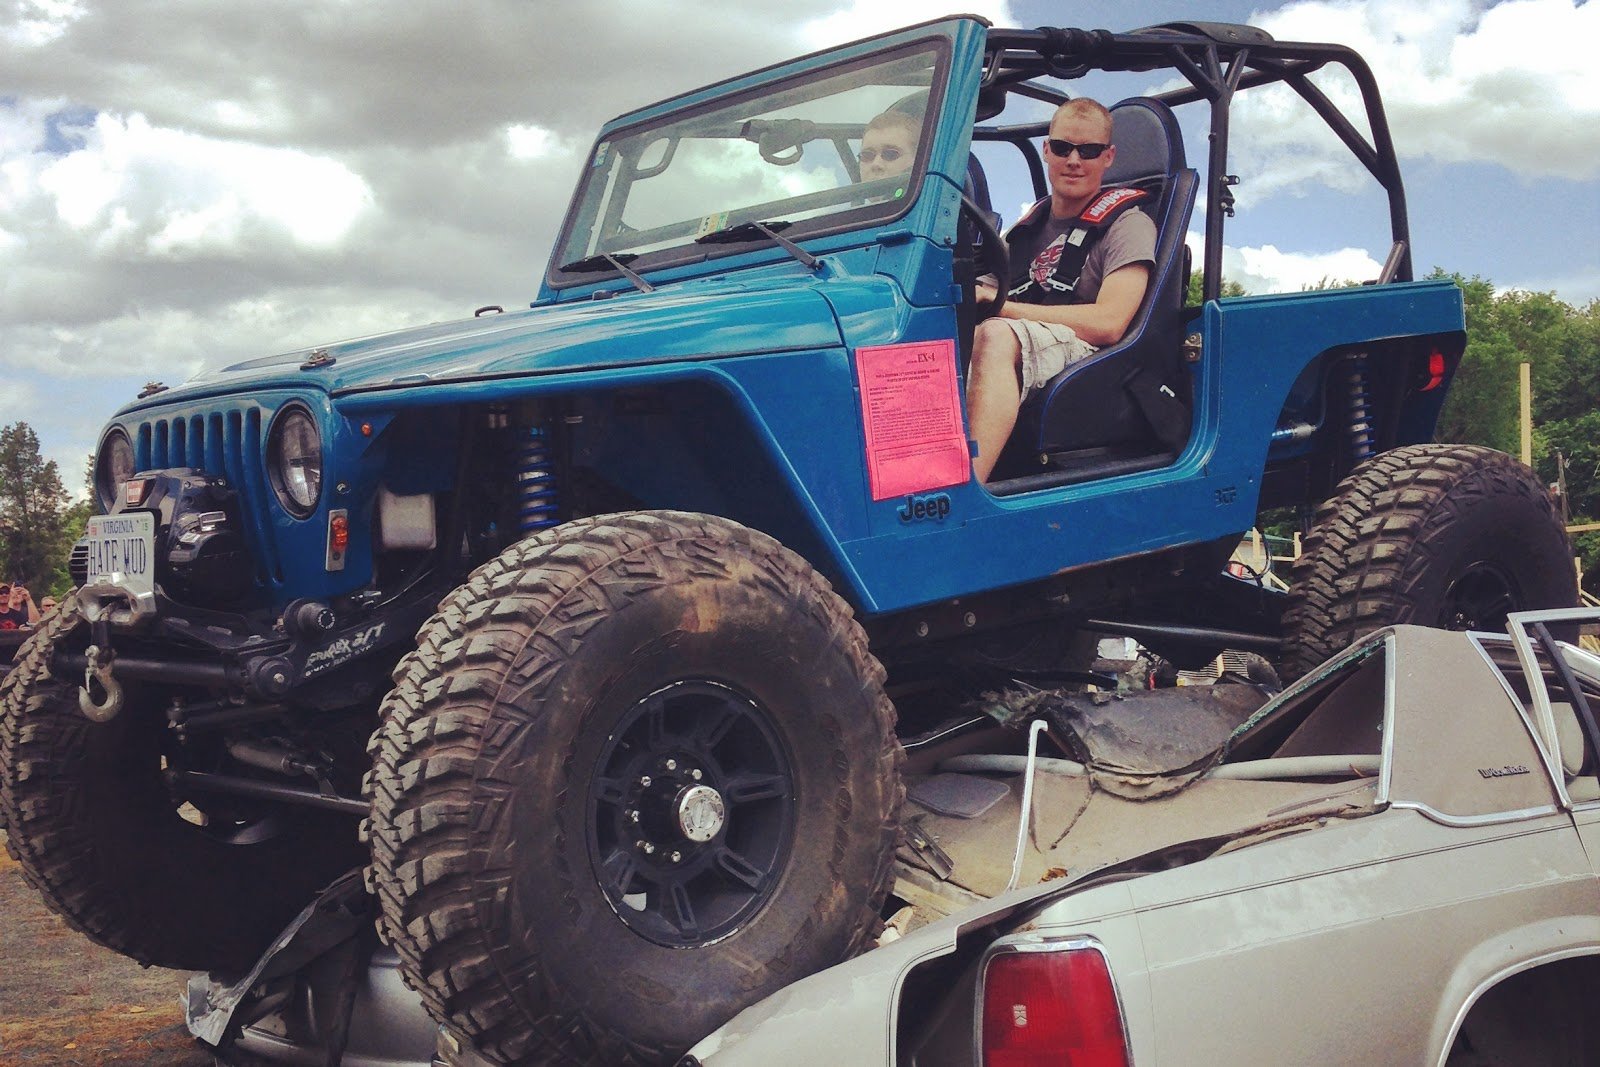 Northern Virginia Jeep Show and Shine 2015 Set For May 30th